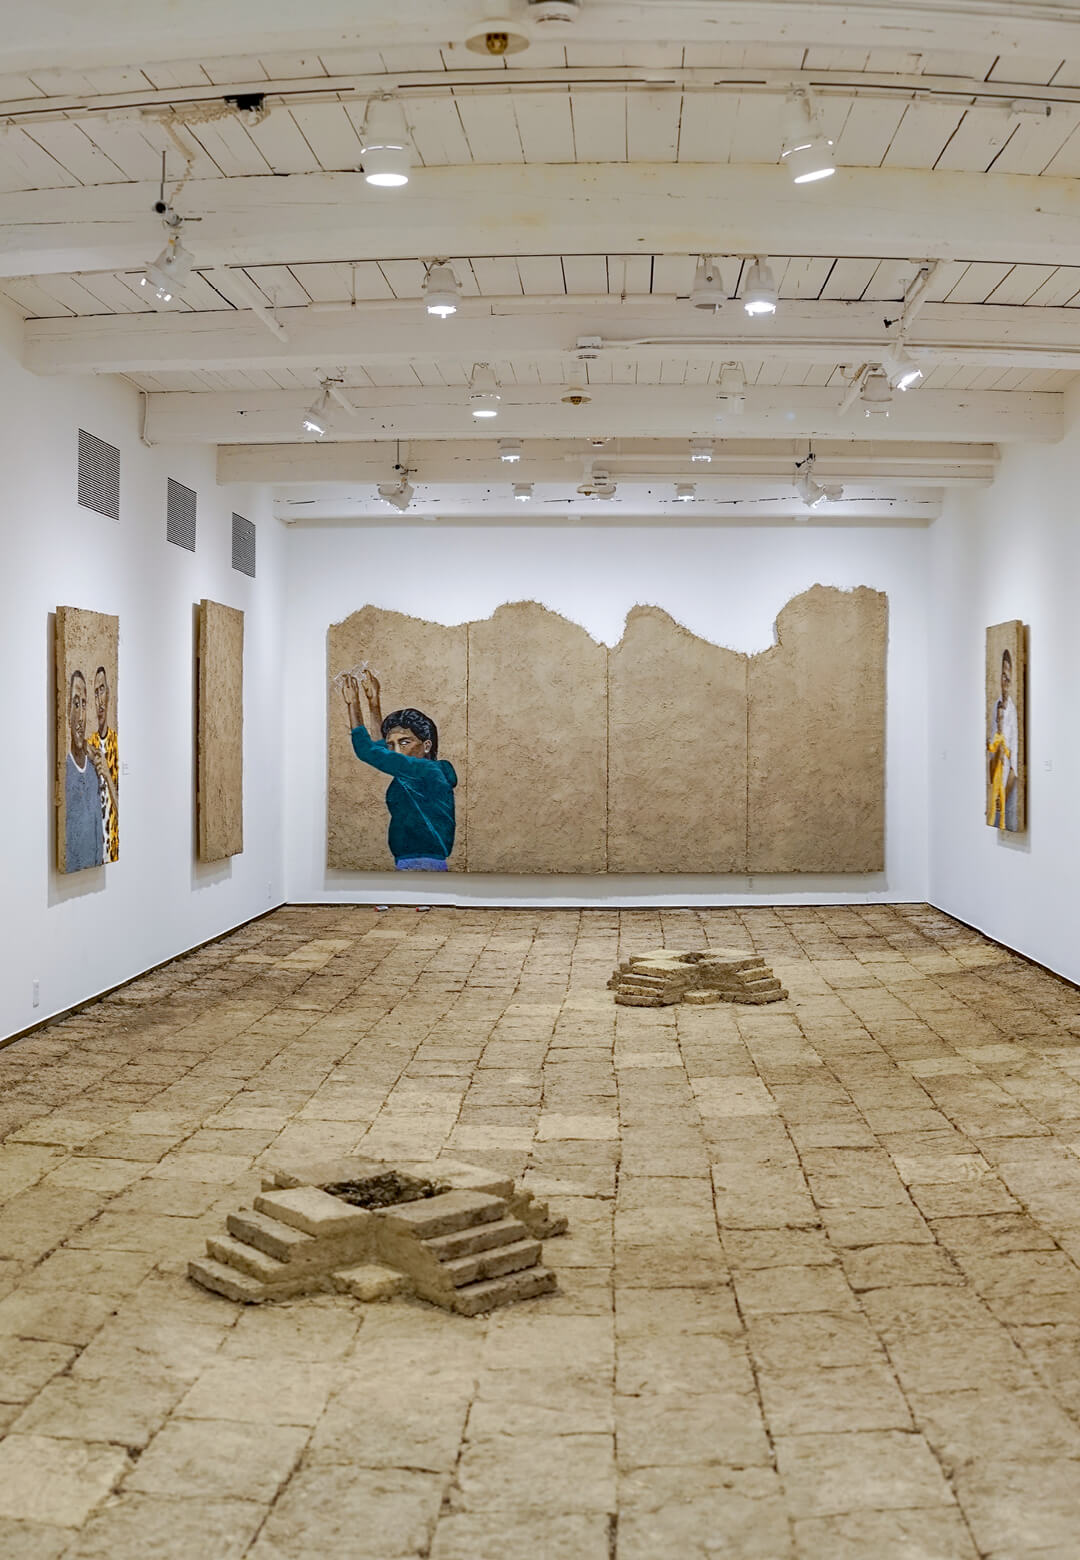 An installation view of Rafa Esparza's staring at the sun at MASS MoCA, with adobe bricks | Staring at the Sun | Rafa Esparza | STIRworld